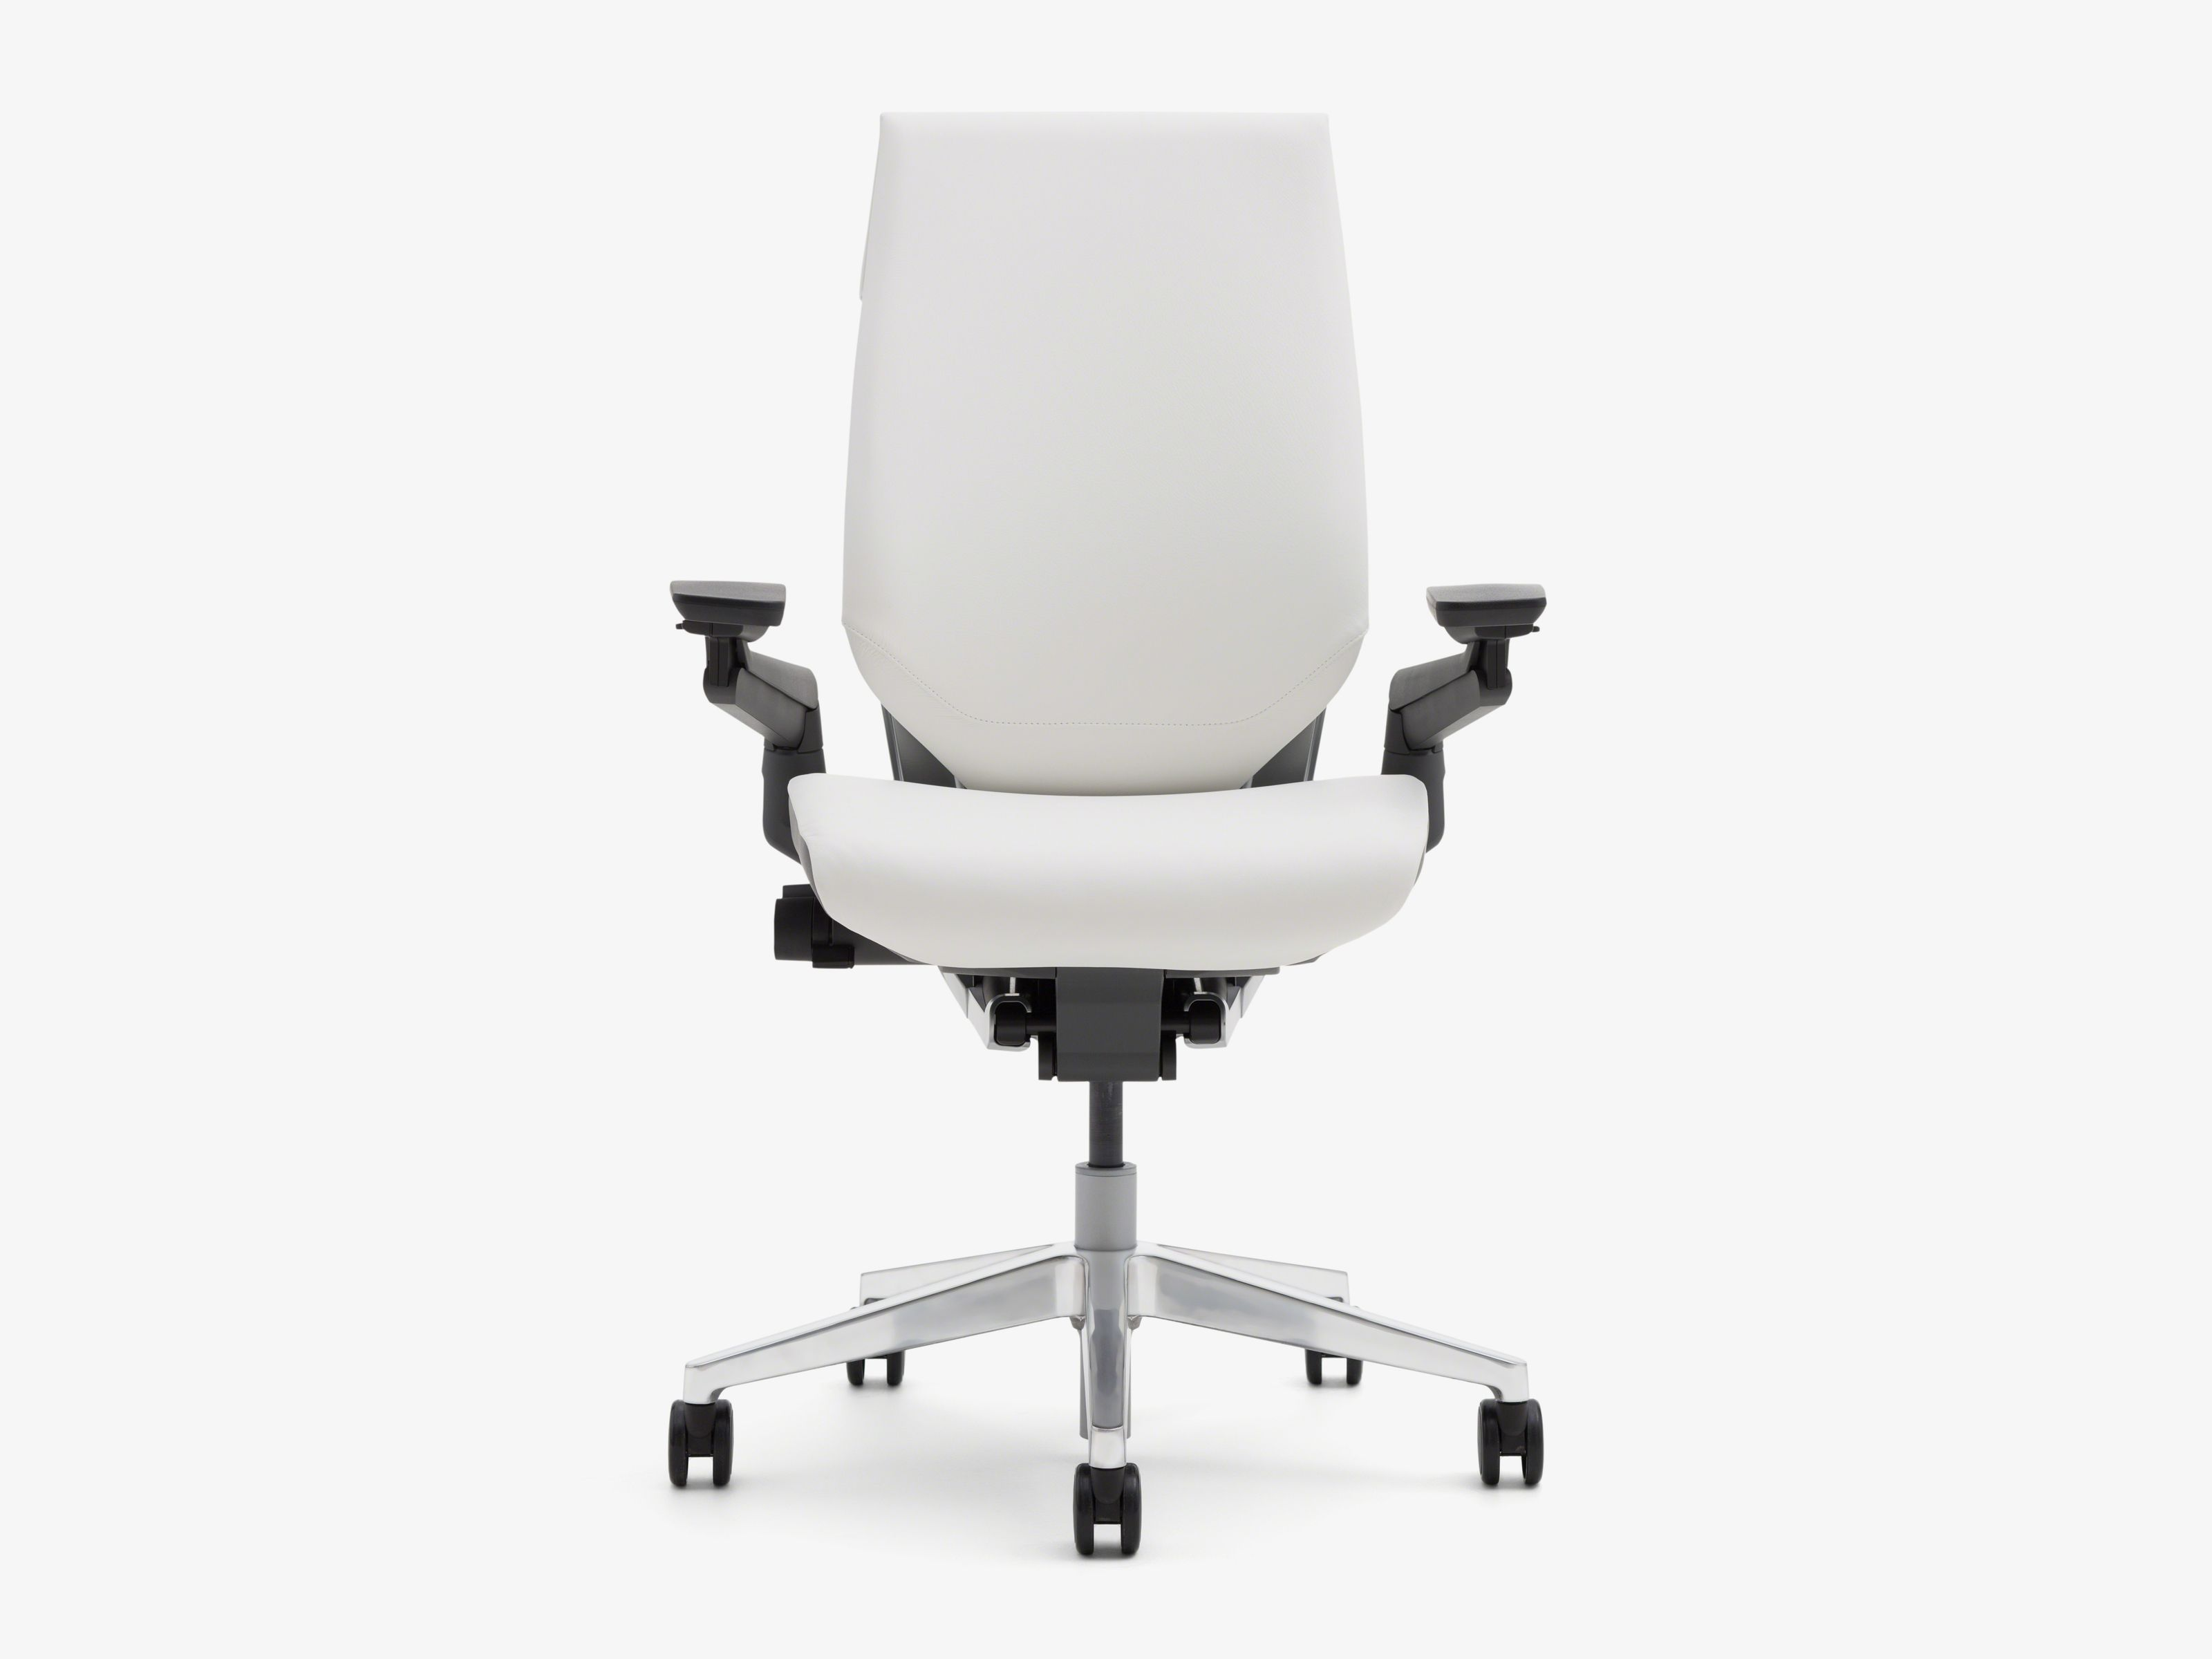 Gesture Best ergonomic chair, Chair, Chairs for rent